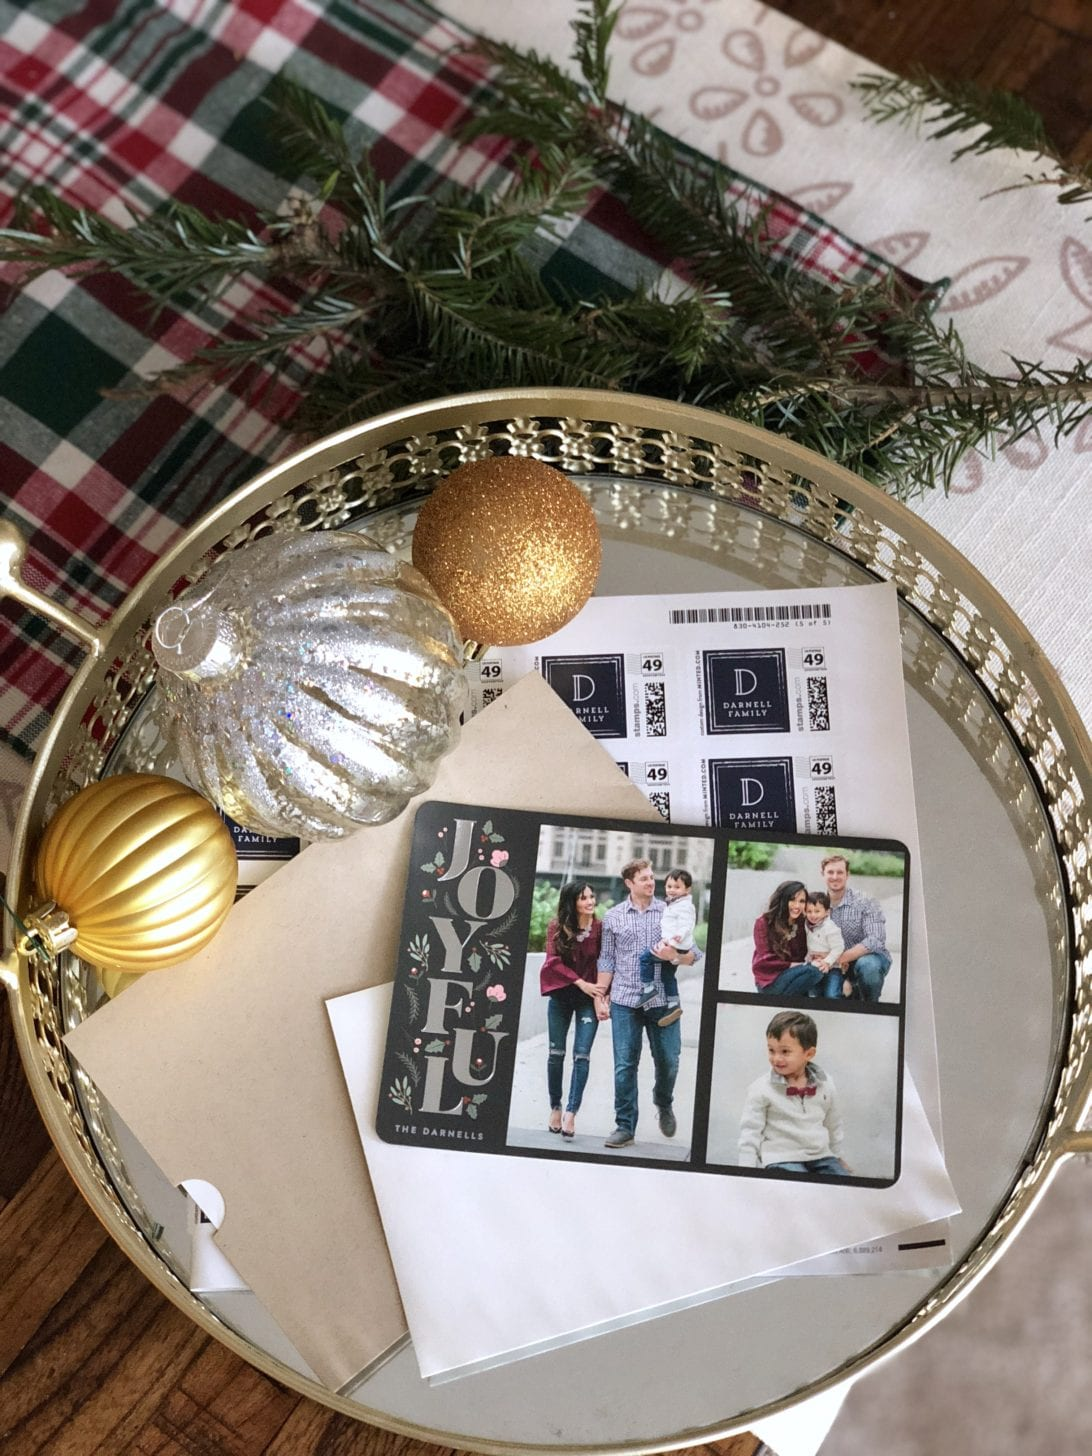 CHRISTMAS CARDS, MINTED HOLIDAY CARDS, COORDINATING FAMILY OUTFITS, FAMILY PHOTOGRAPHY, FAMILY PICTURES, CHRISTIAN LOUBOUTIN HEELS, TIPS FOR FAMILY PICTURES, TIPS FOR CHRISTMAS PICTURES, CITY CHRISTMAS PICTURES